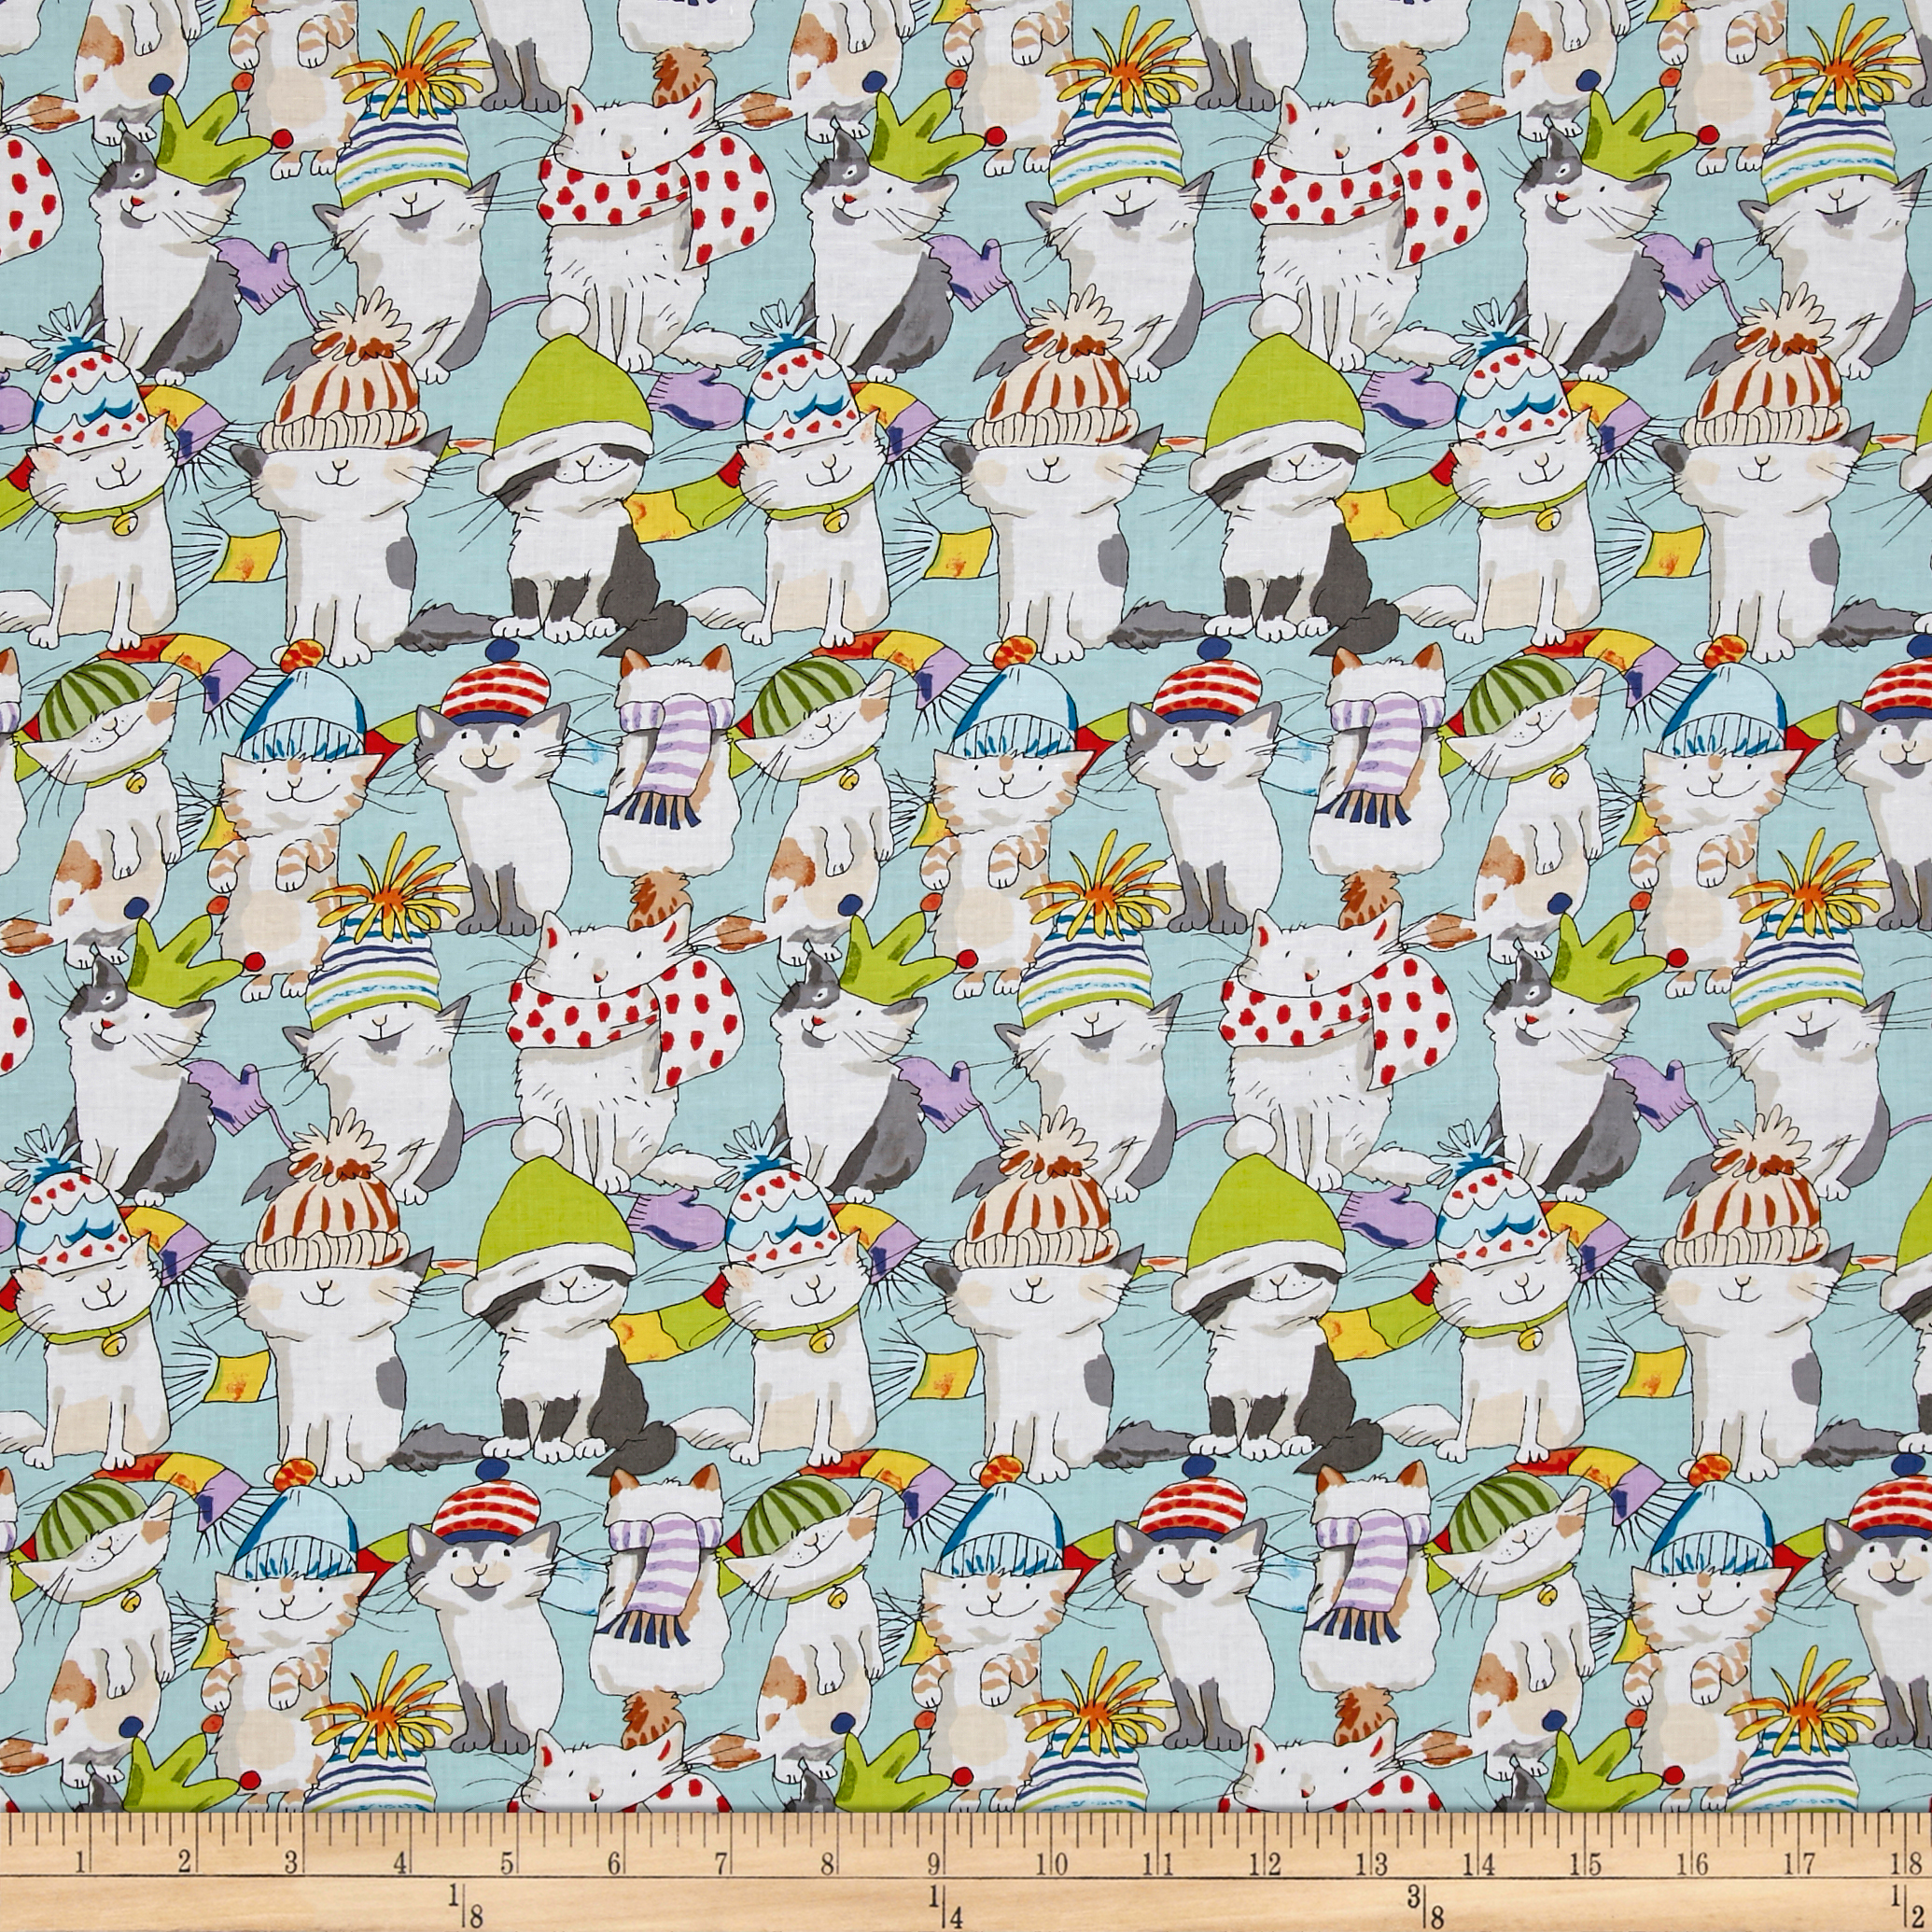 Knittens Large Kittens Light Teal Fabric by Clothworks in USA